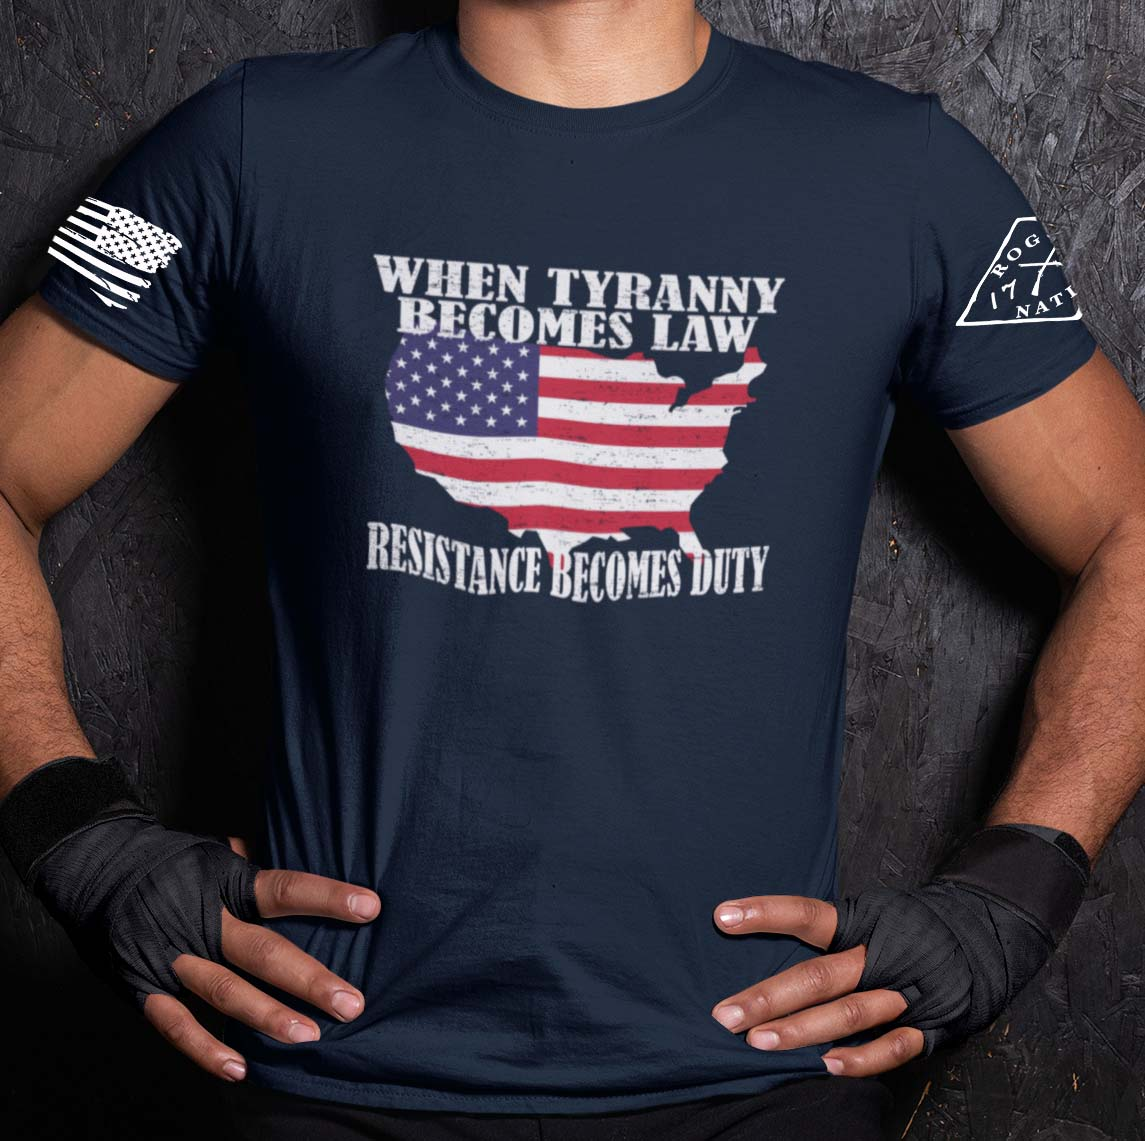 When Tyranny becomes Law Tshirt in Navy